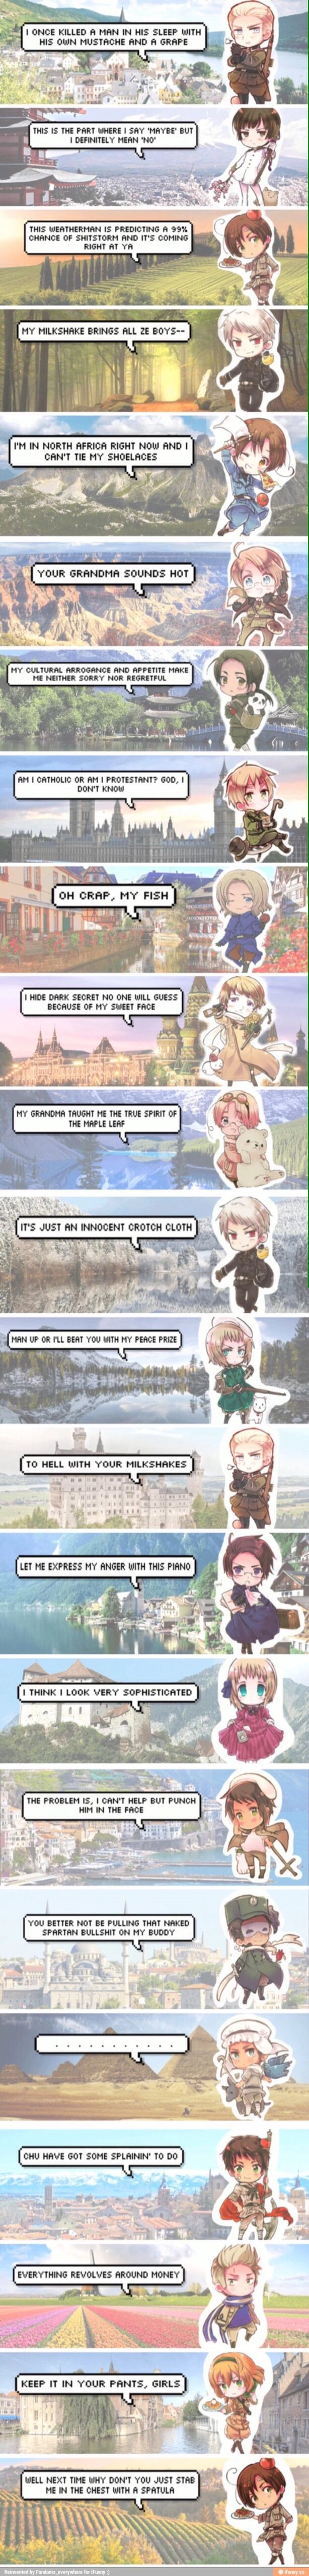 Hetalia characters with various quotes they said in the anime